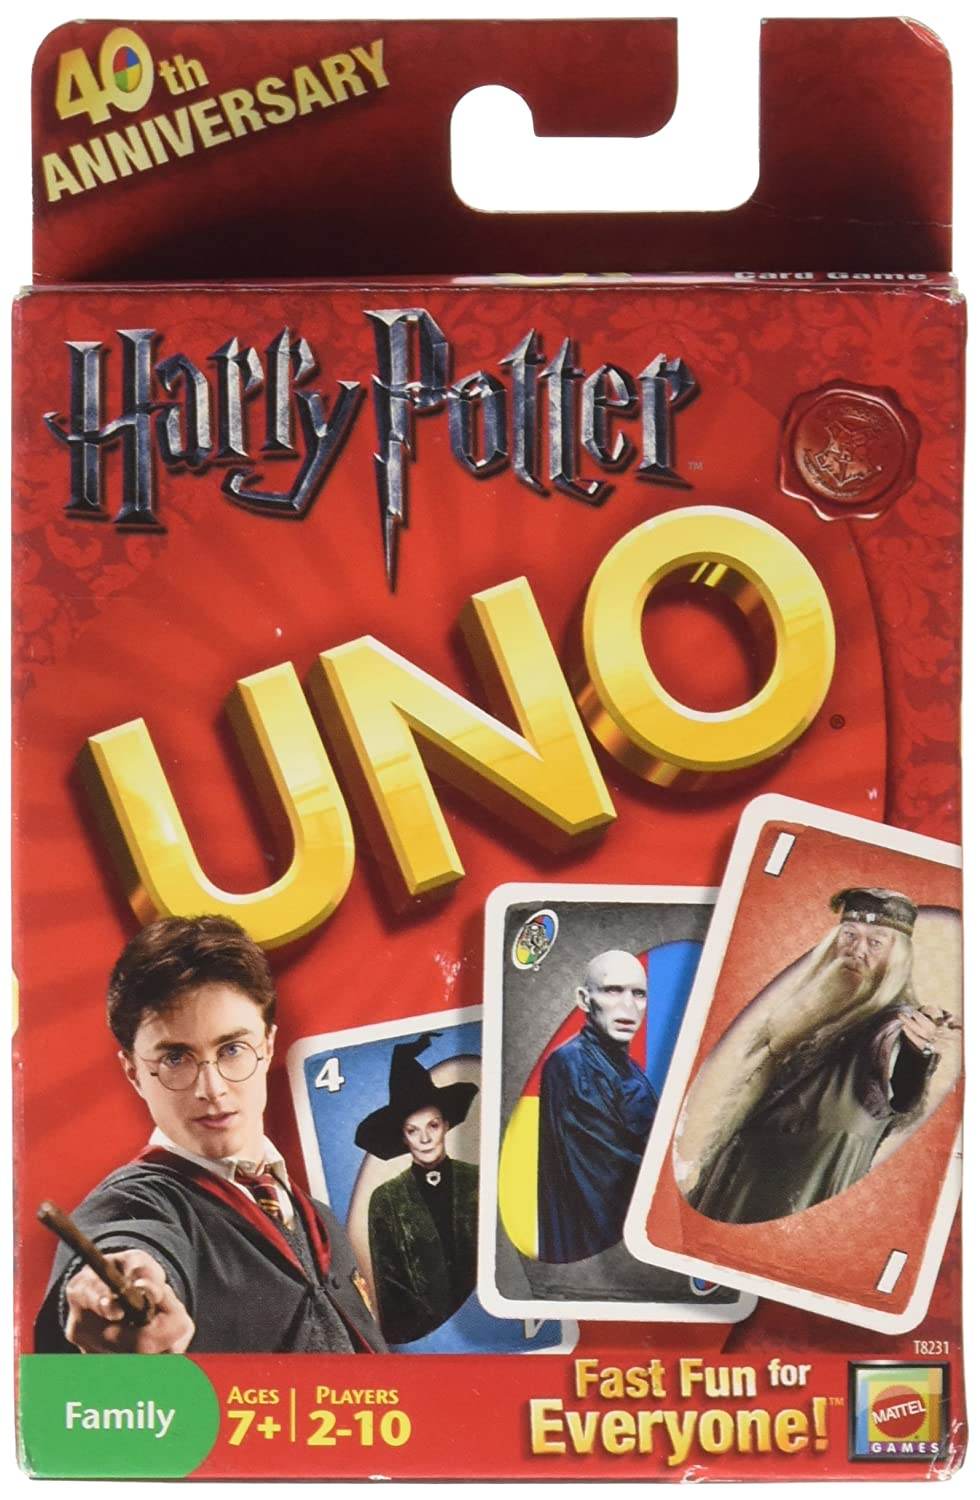 Mattel Harry Potter Uno Card Game - Mattel T8231